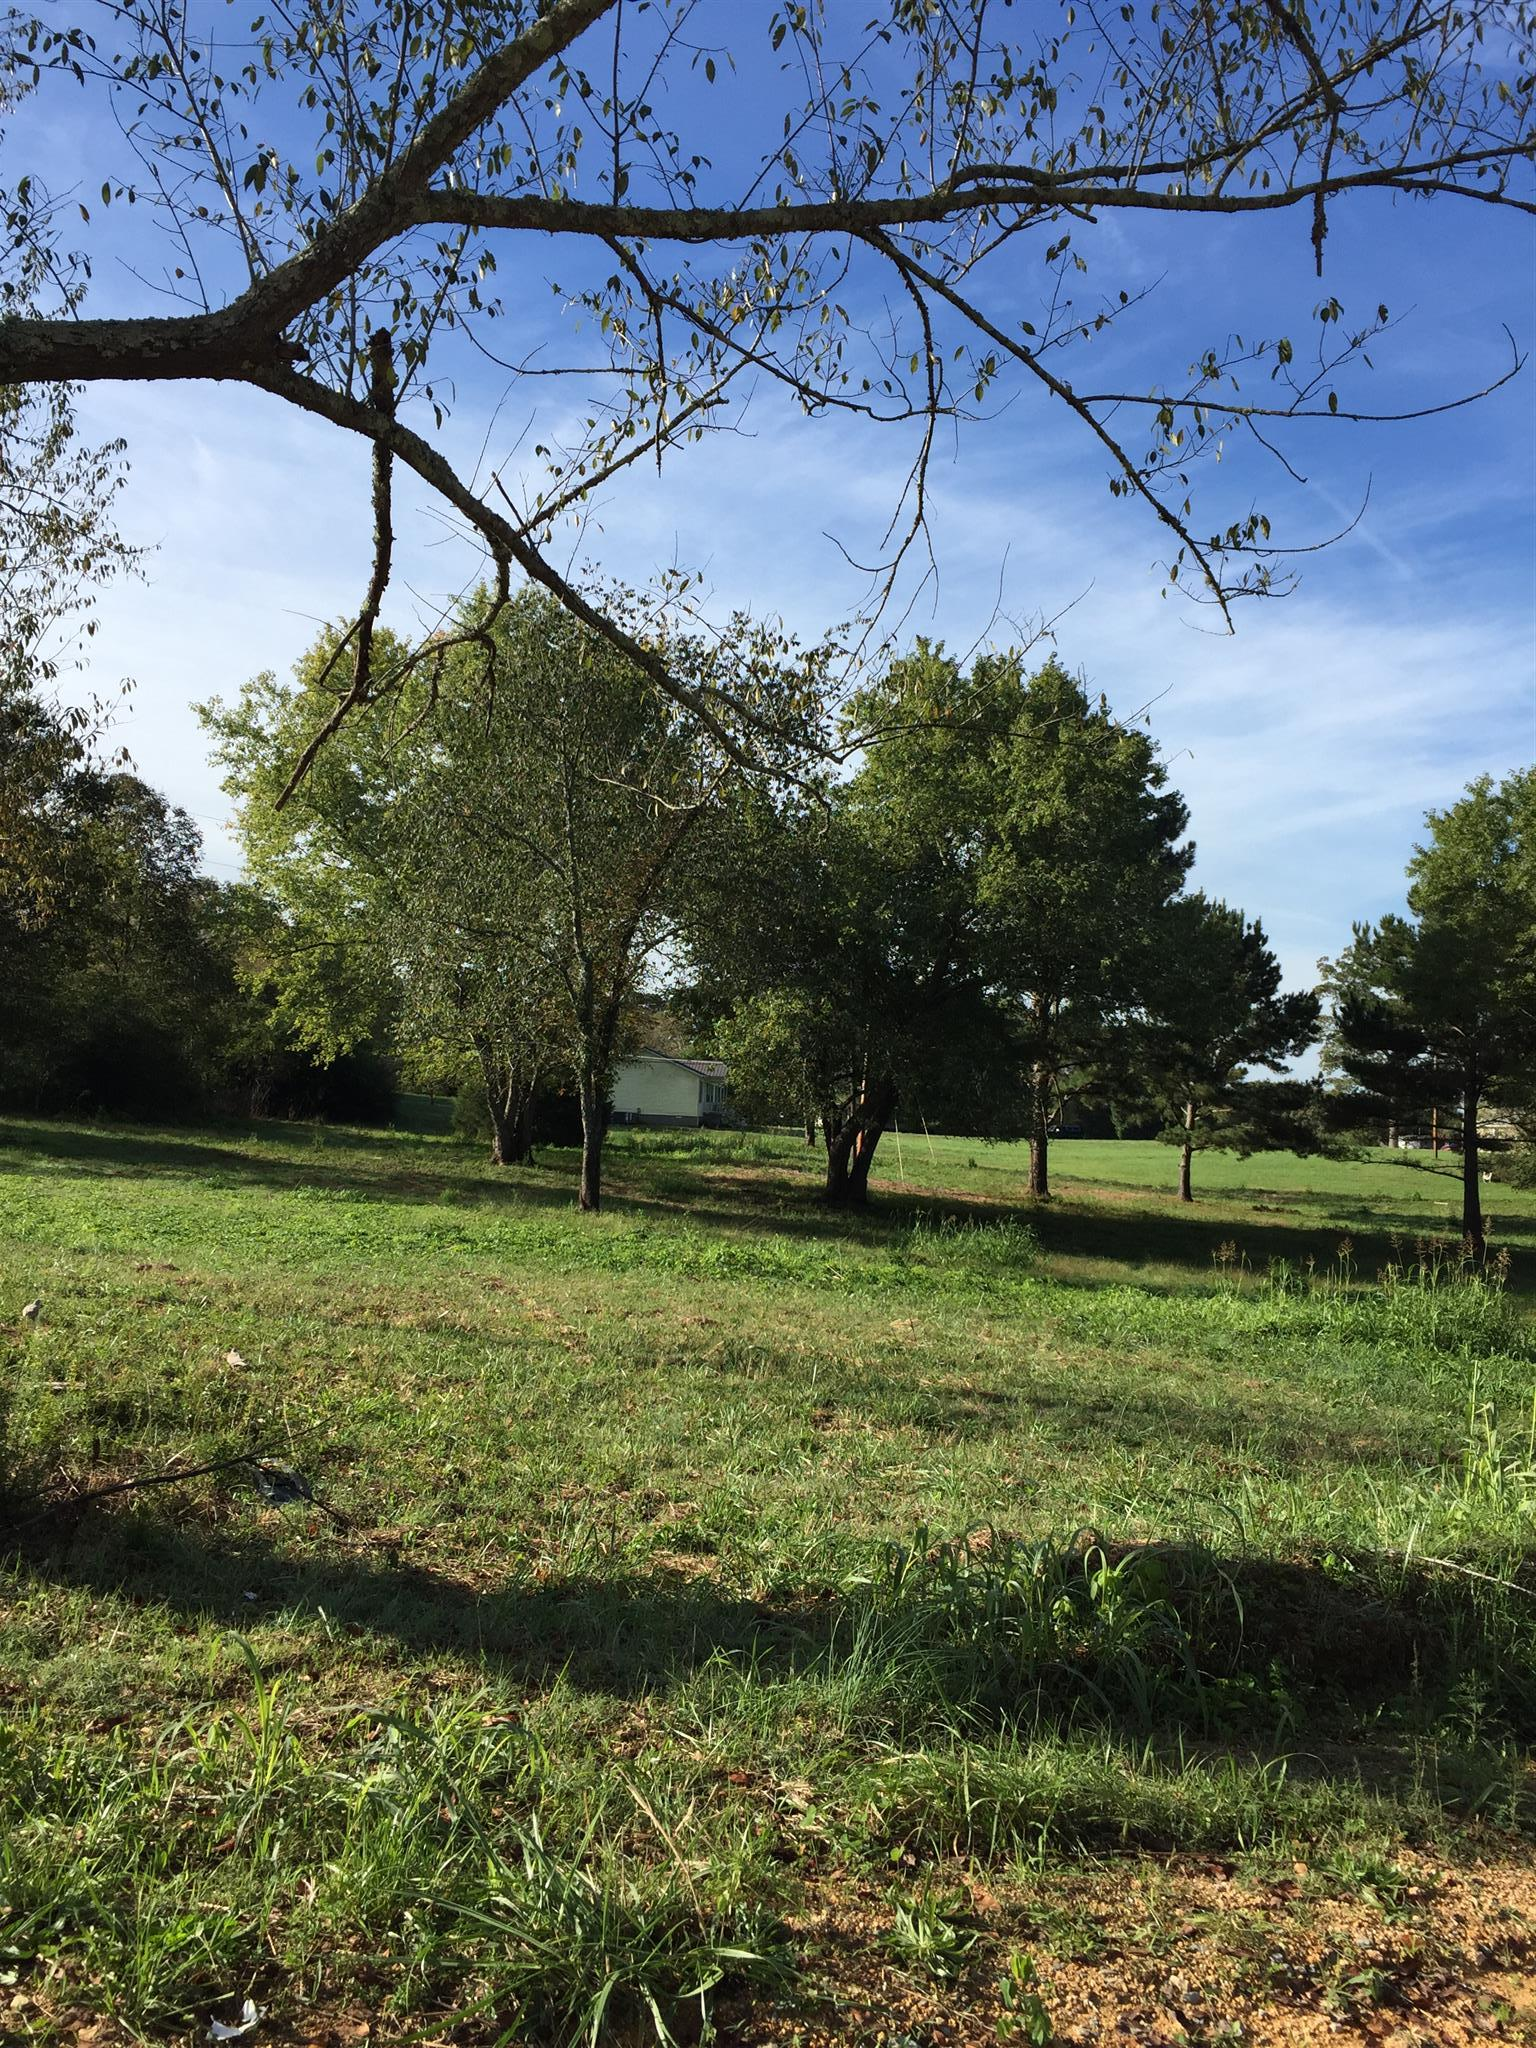 0 School House Rd, Nunnelly, TN 37137 - Nunnelly, TN real estate listing